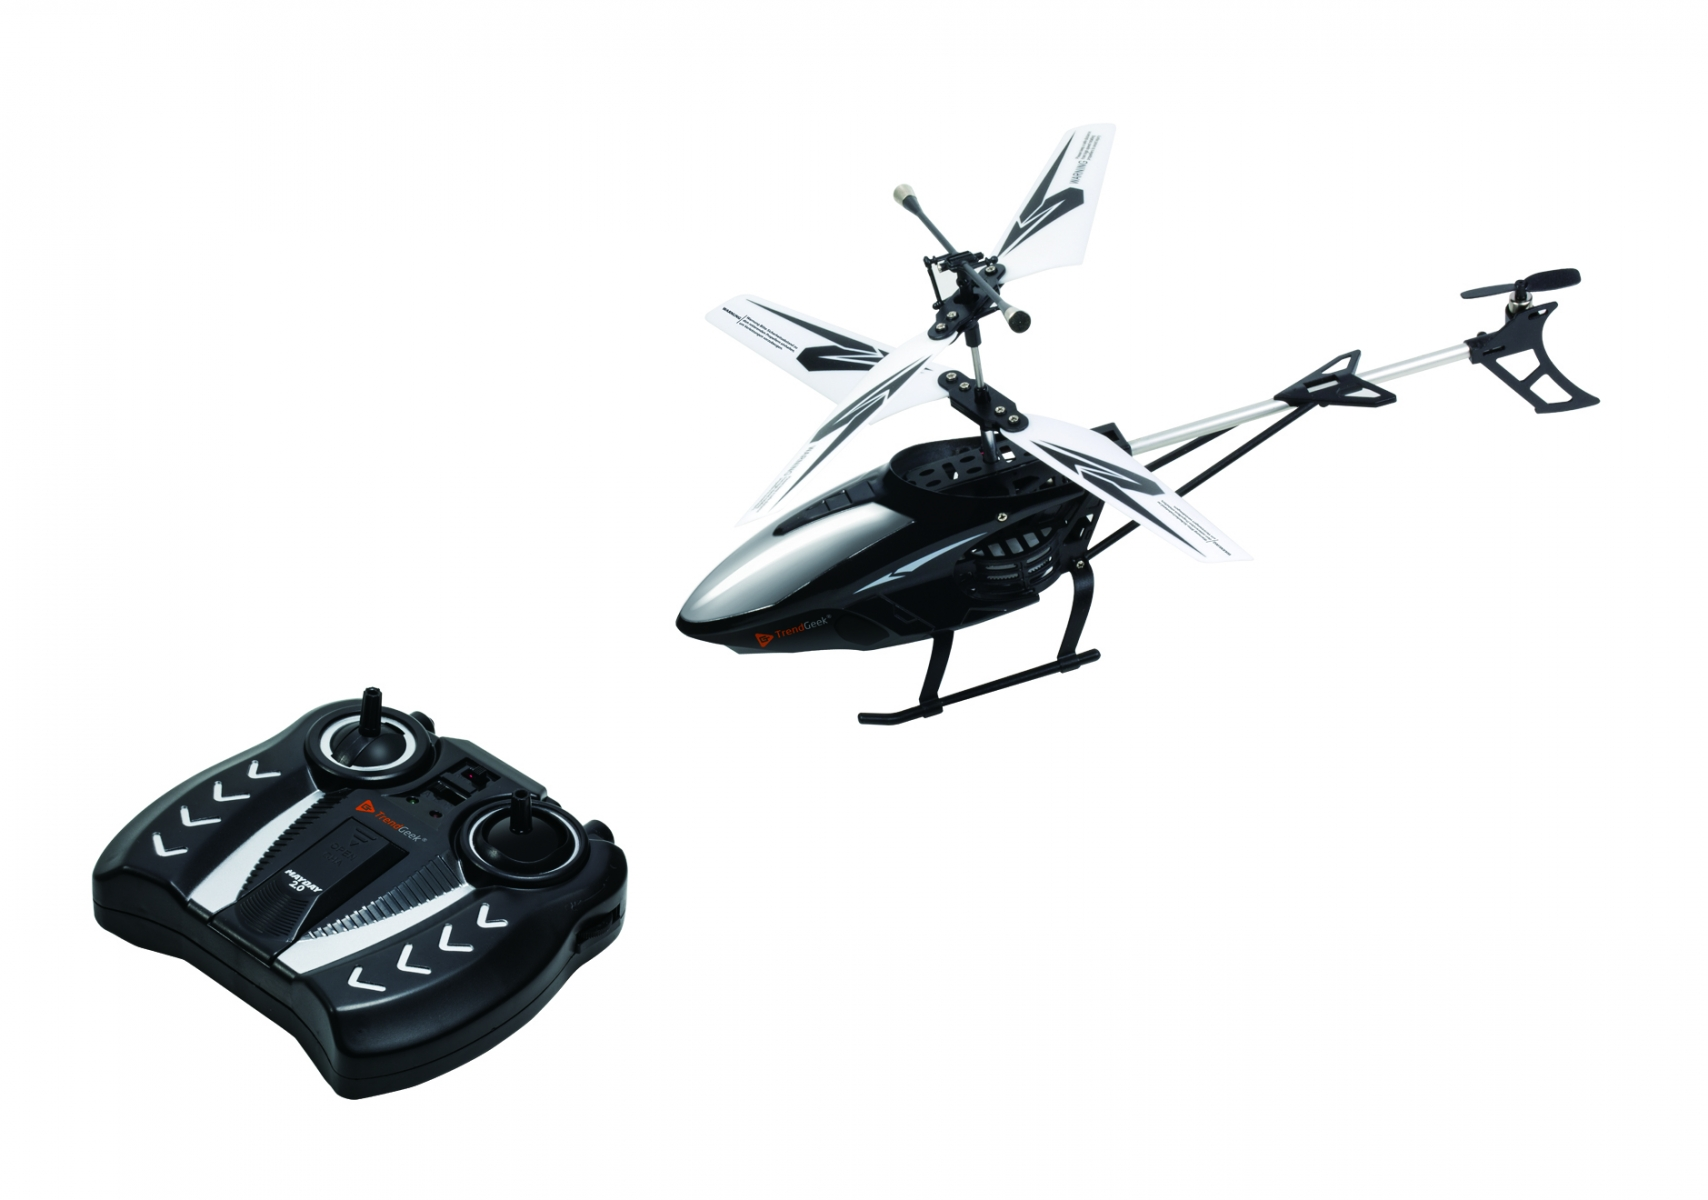 TrendGeek Crash Resistant TG-003 RC Helikopter